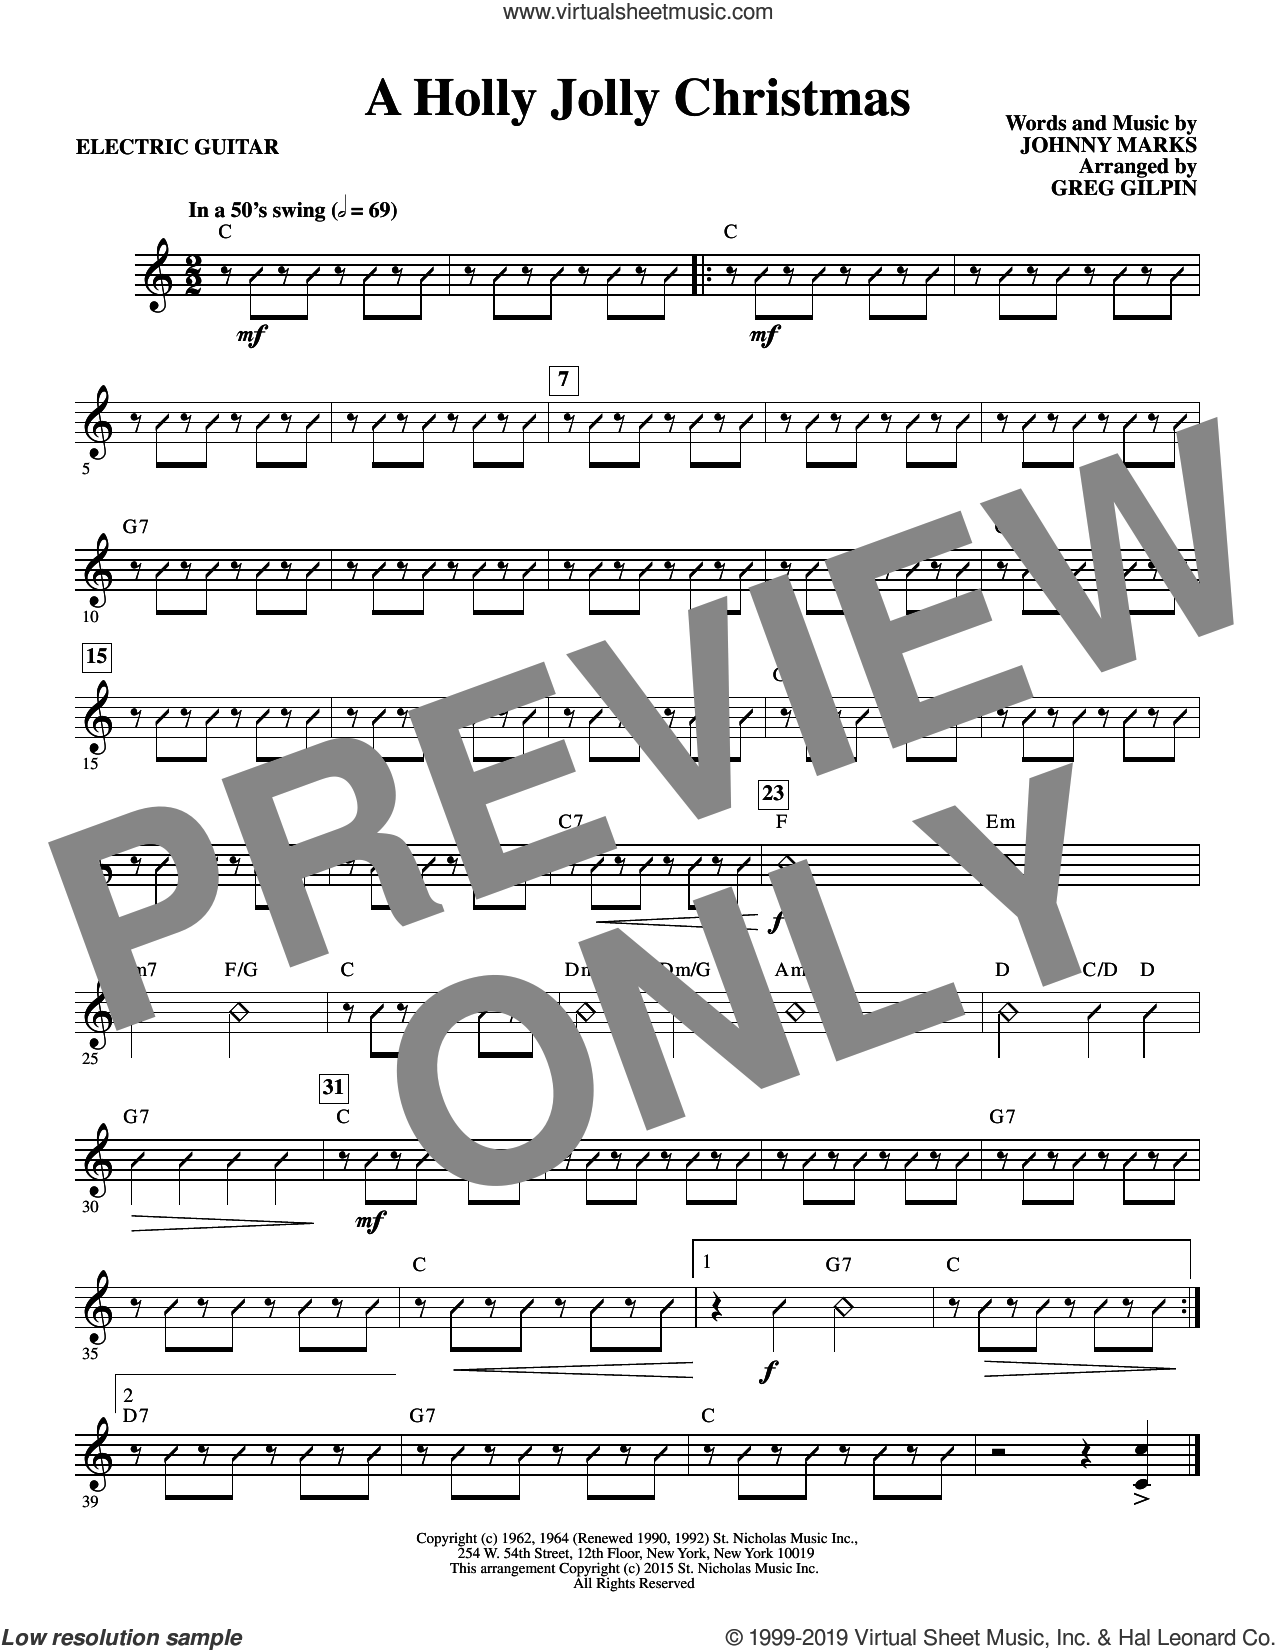 A Holly, Jolly Christmas (arr. Greg Gilpin) (complete set of parts) sheet music for orchestra/band by Greg Gilpin, Johnny Marks and Lady Antebellum, intermediate skill level